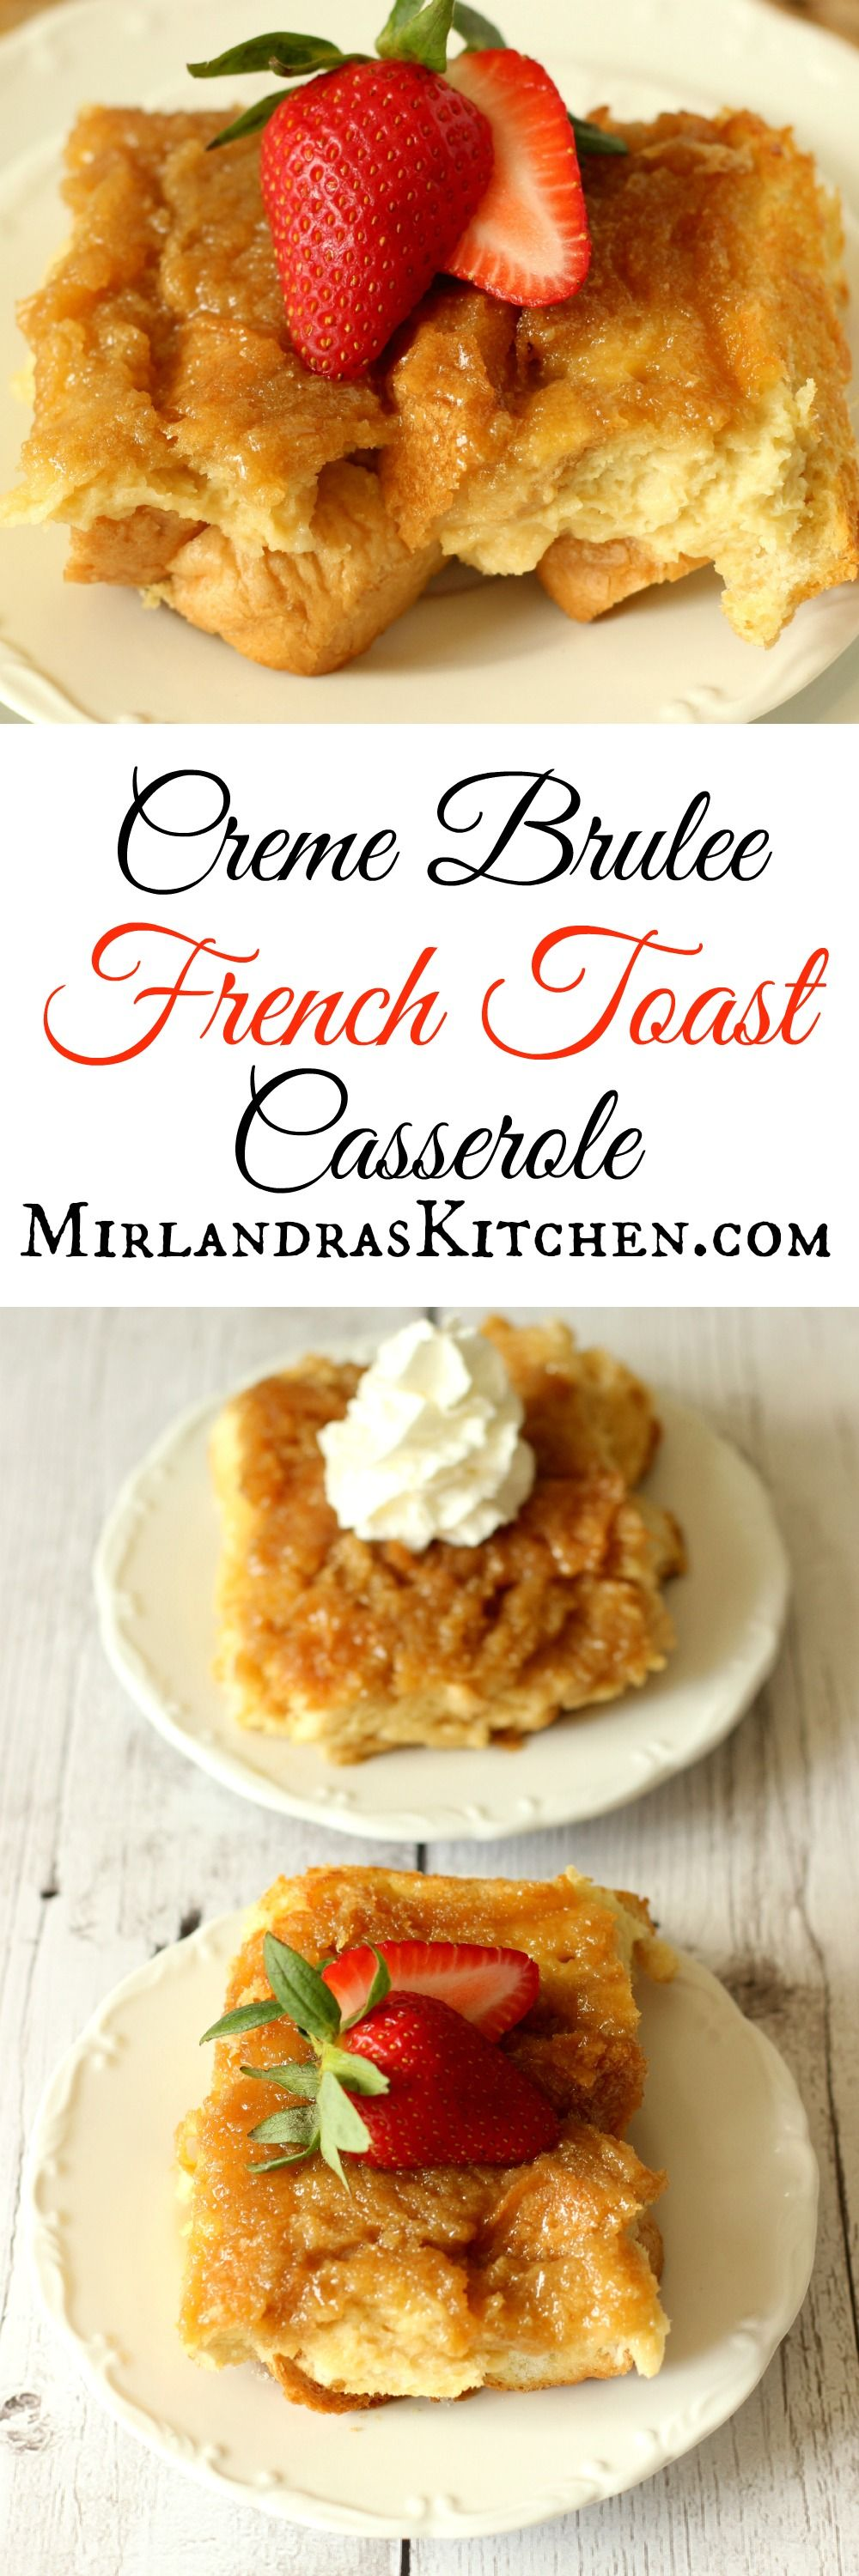 creme brulee french toast casserole recipe birthday breakfast french toast casserole and. Black Bedroom Furniture Sets. Home Design Ideas